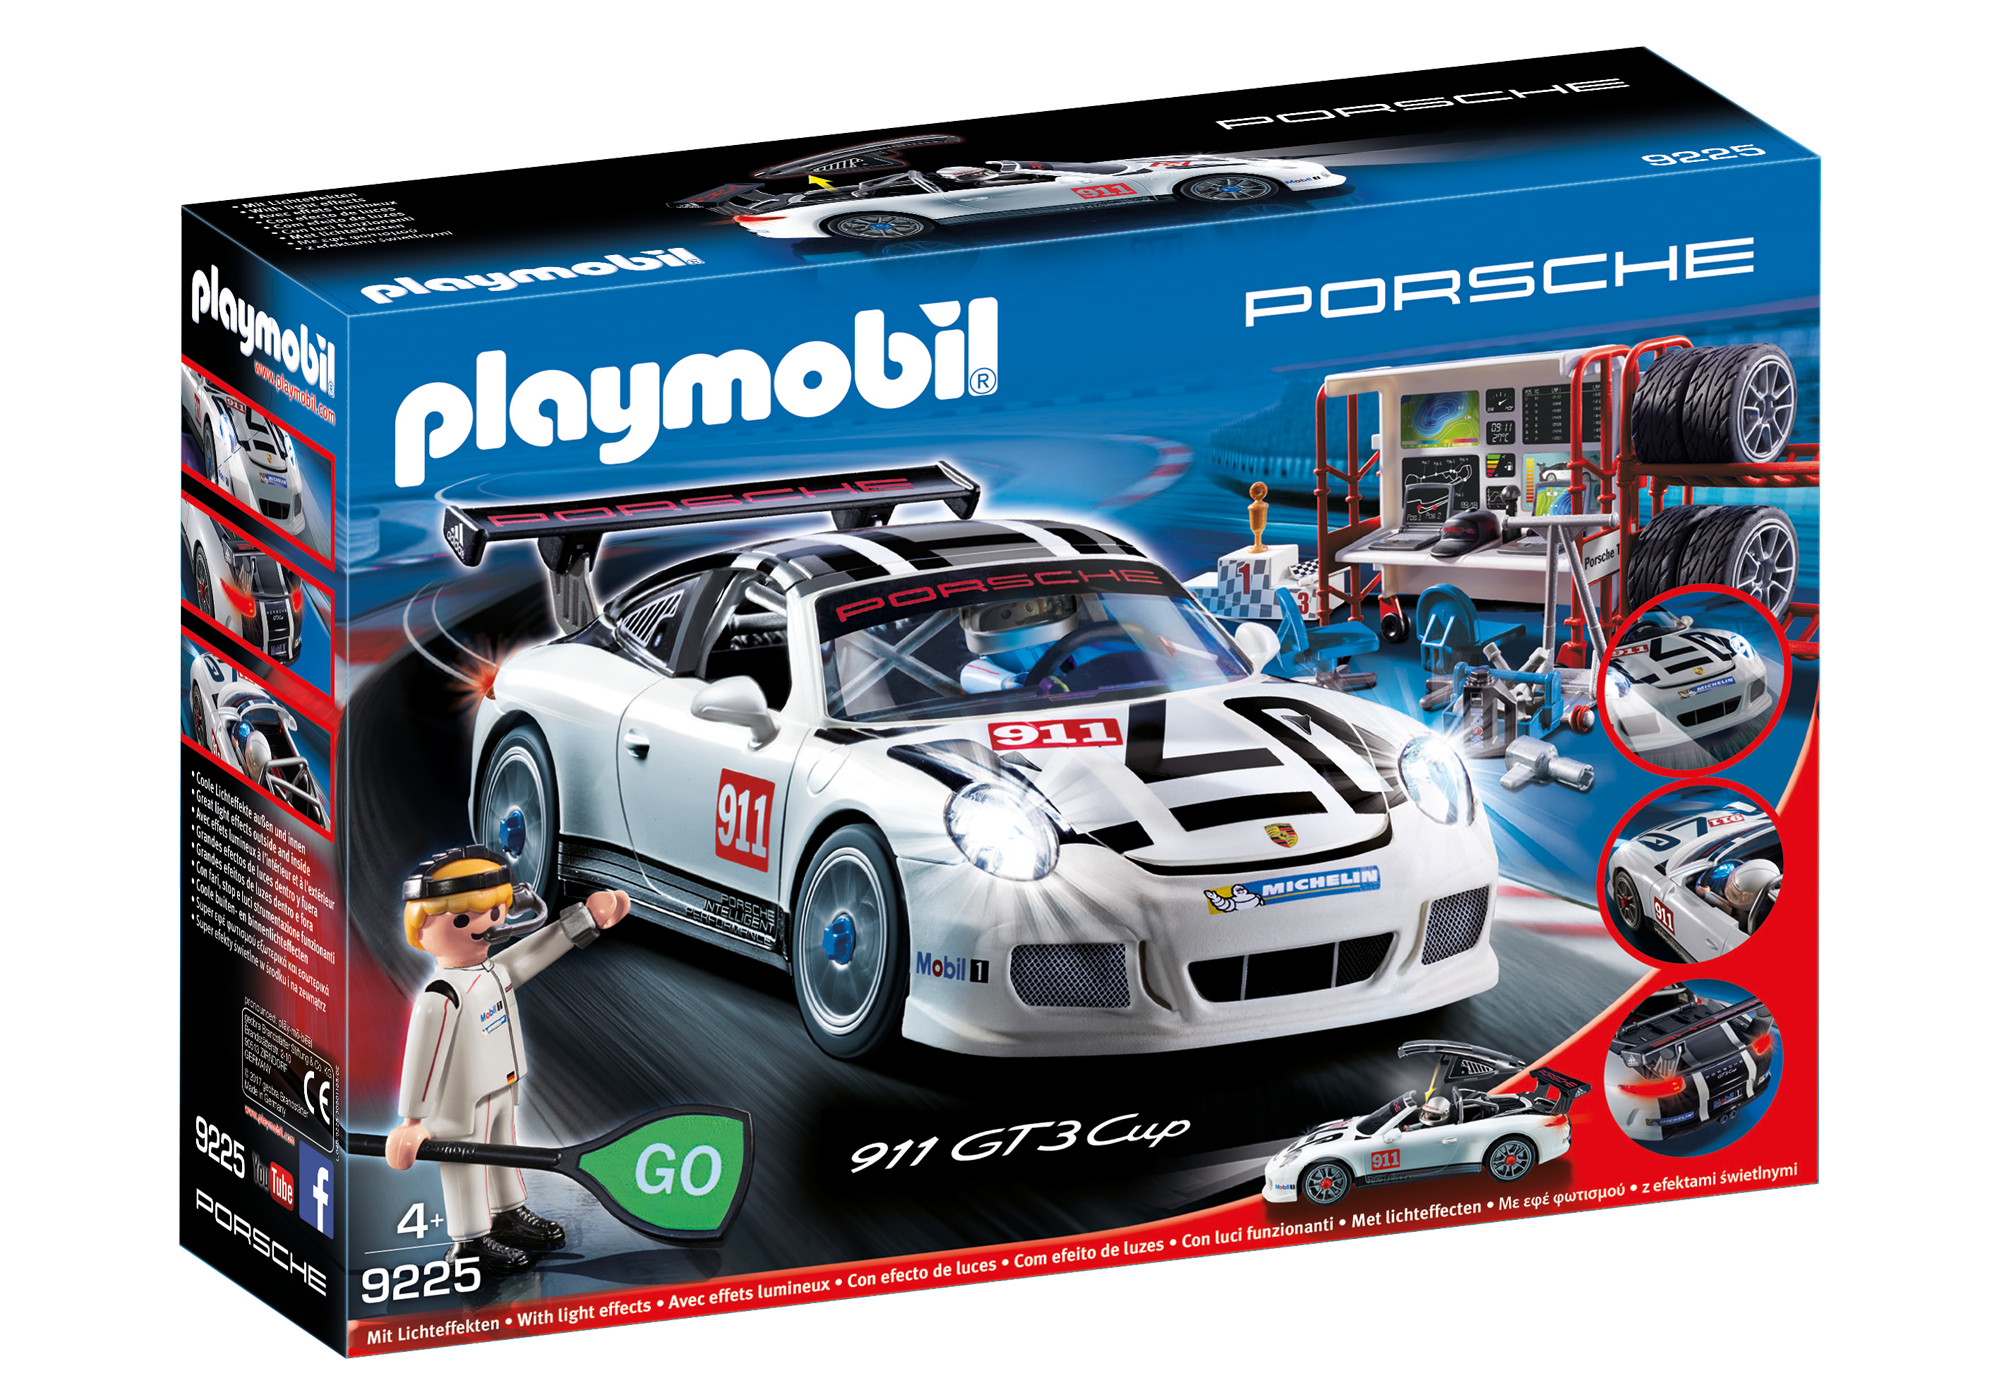 http://media.playmobil.com/i/playmobil/9225_product_box_front/Porsche 911 GT3 Cup